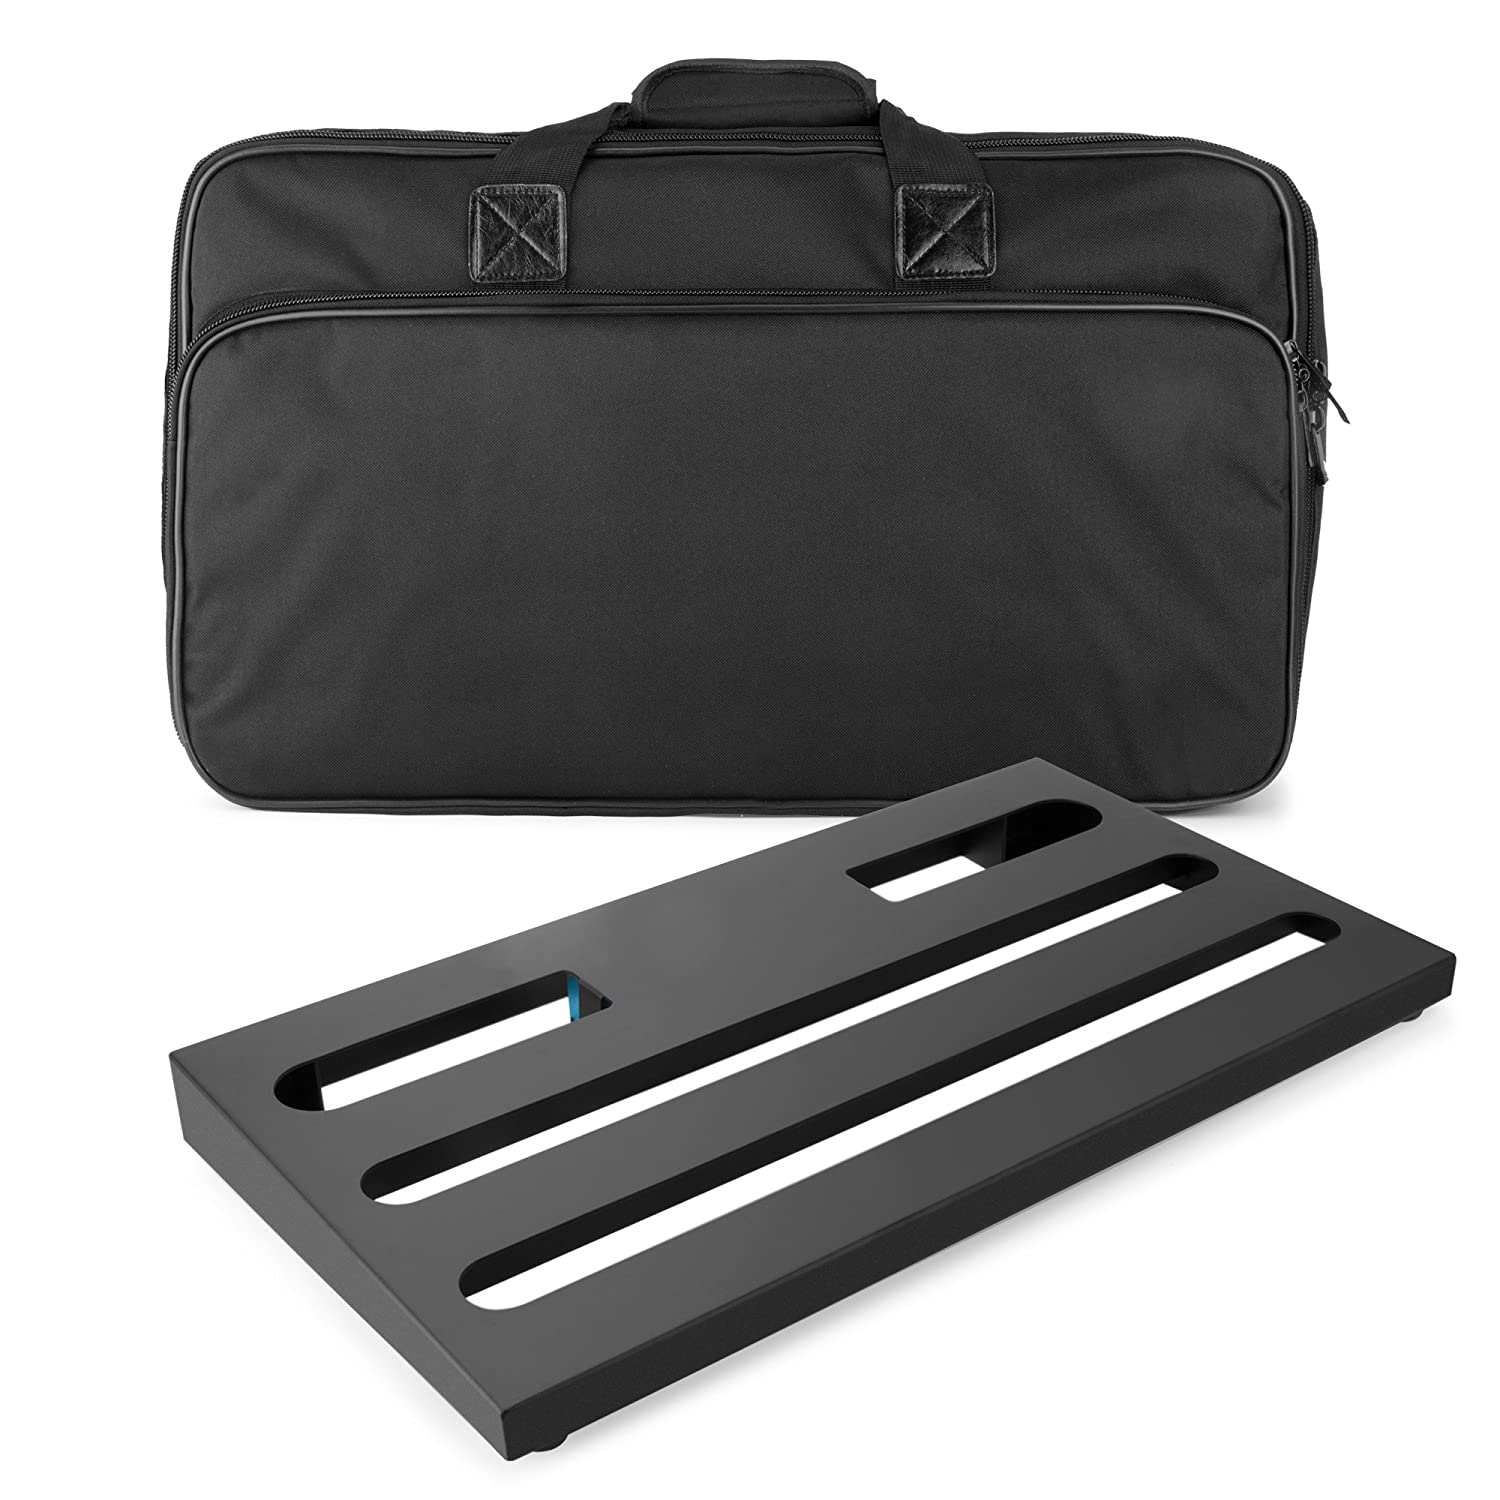 Caline Guitar Pedal Board with Carry Bag Aluminum Alloy PedalBoard Case CB-105, Black CP-105